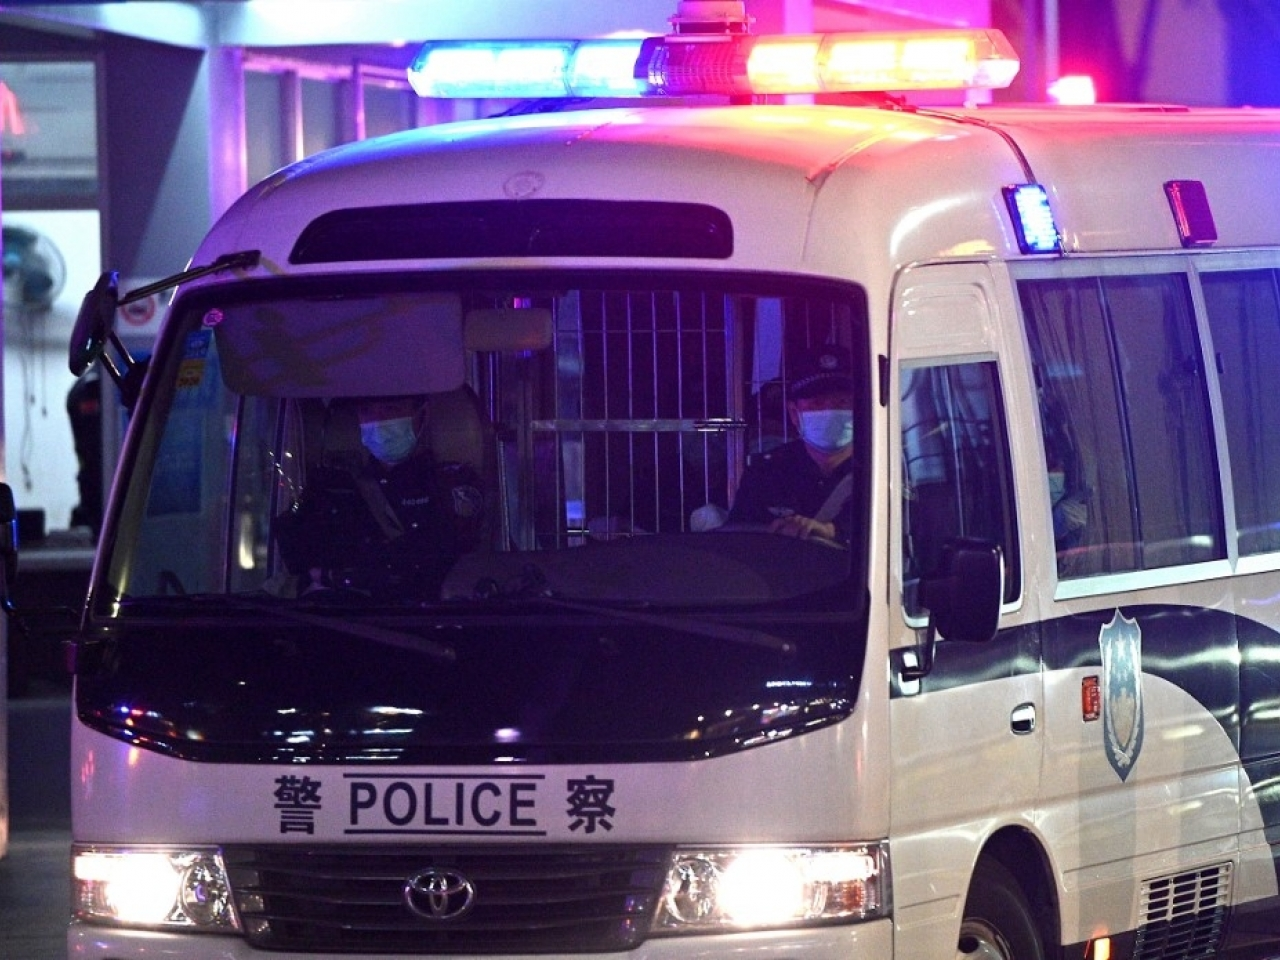 Trial over, verdicts to discontinuance help later: Shenzhen court